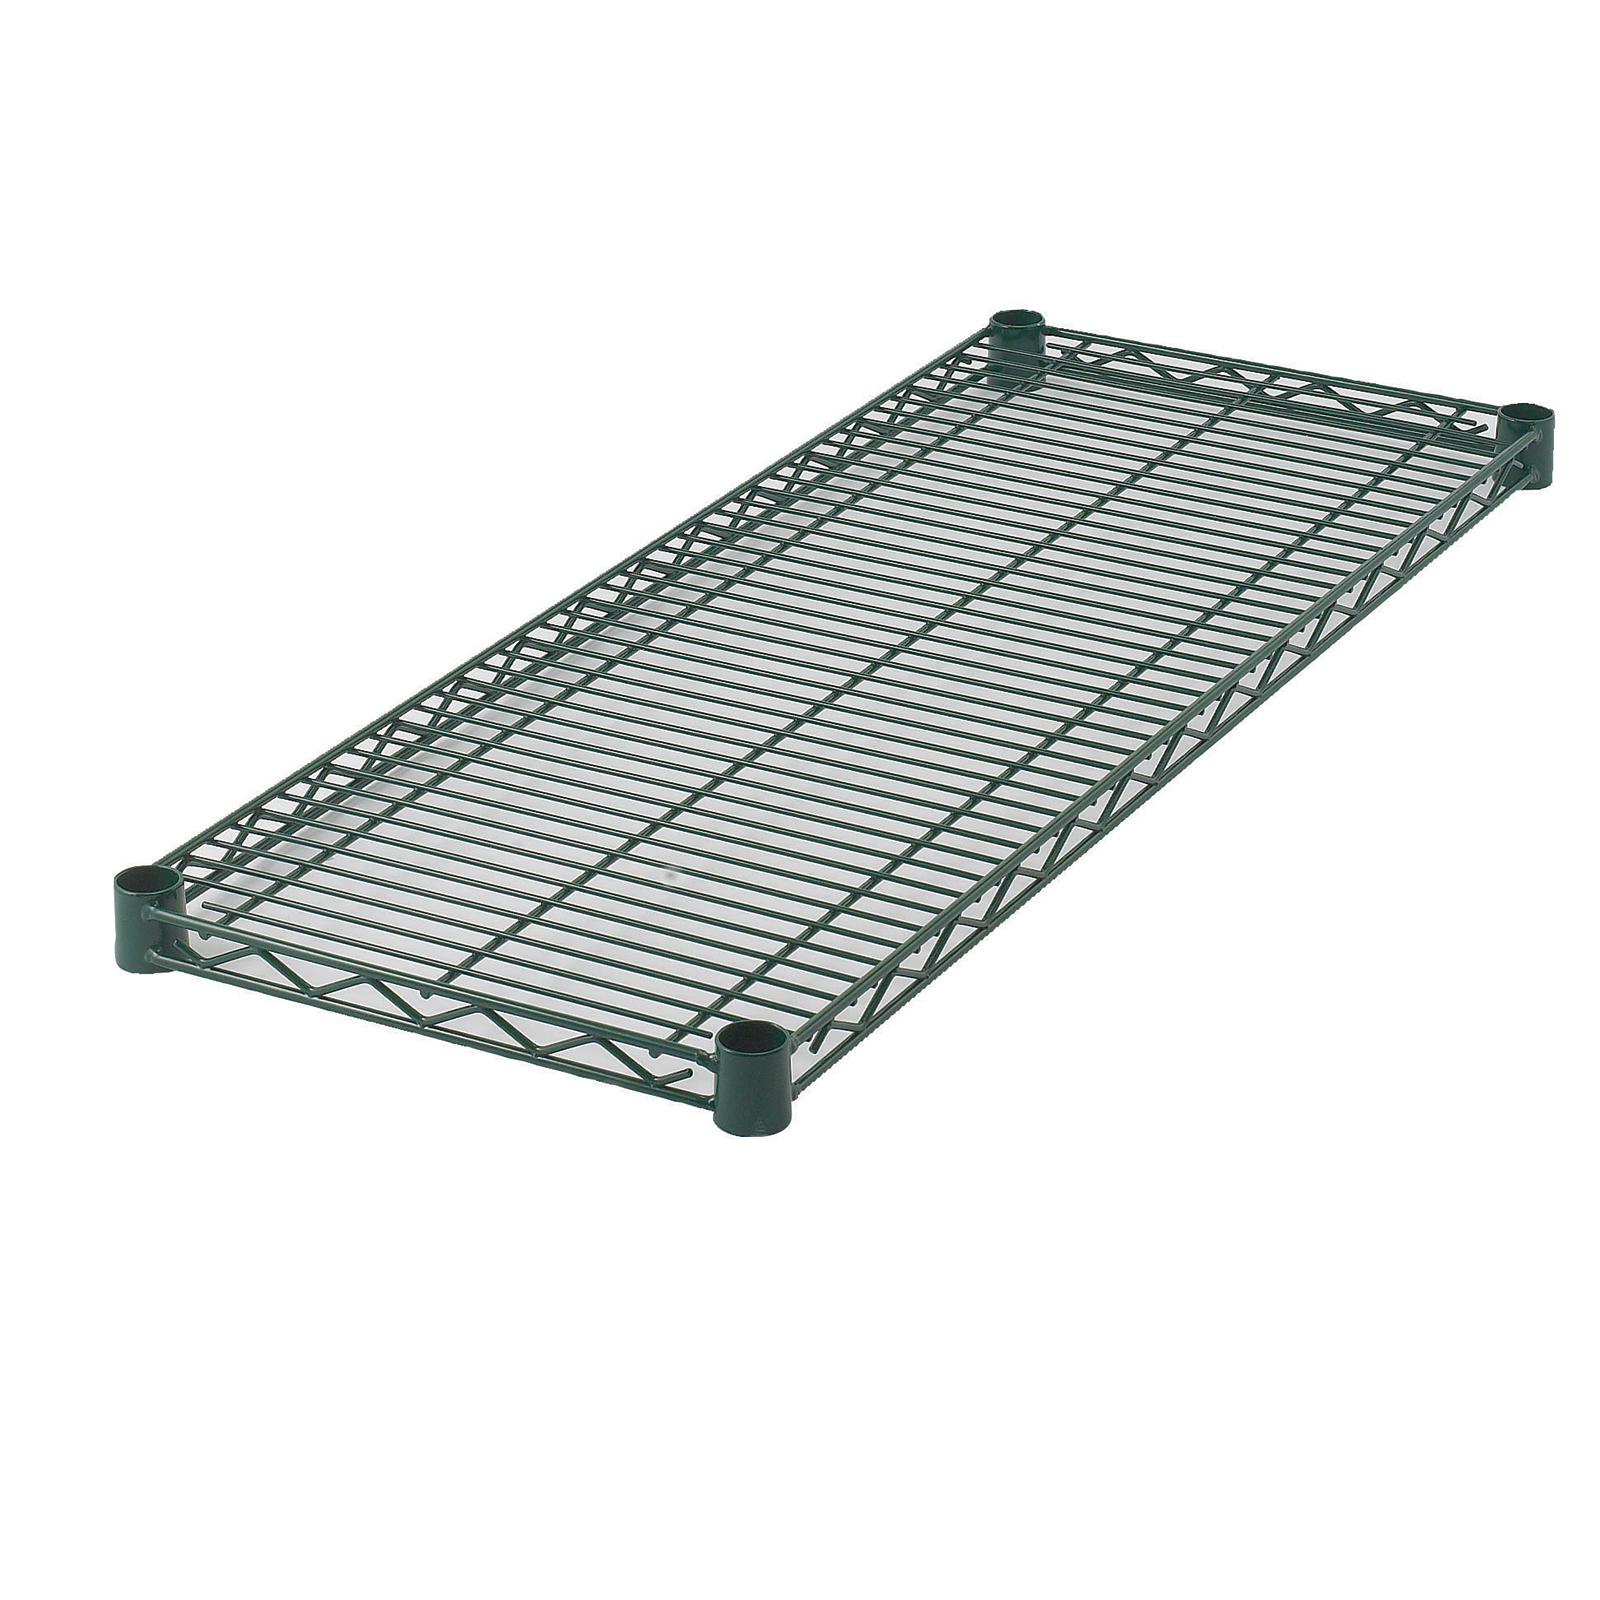 Winco VEX-1824 shelving, wire